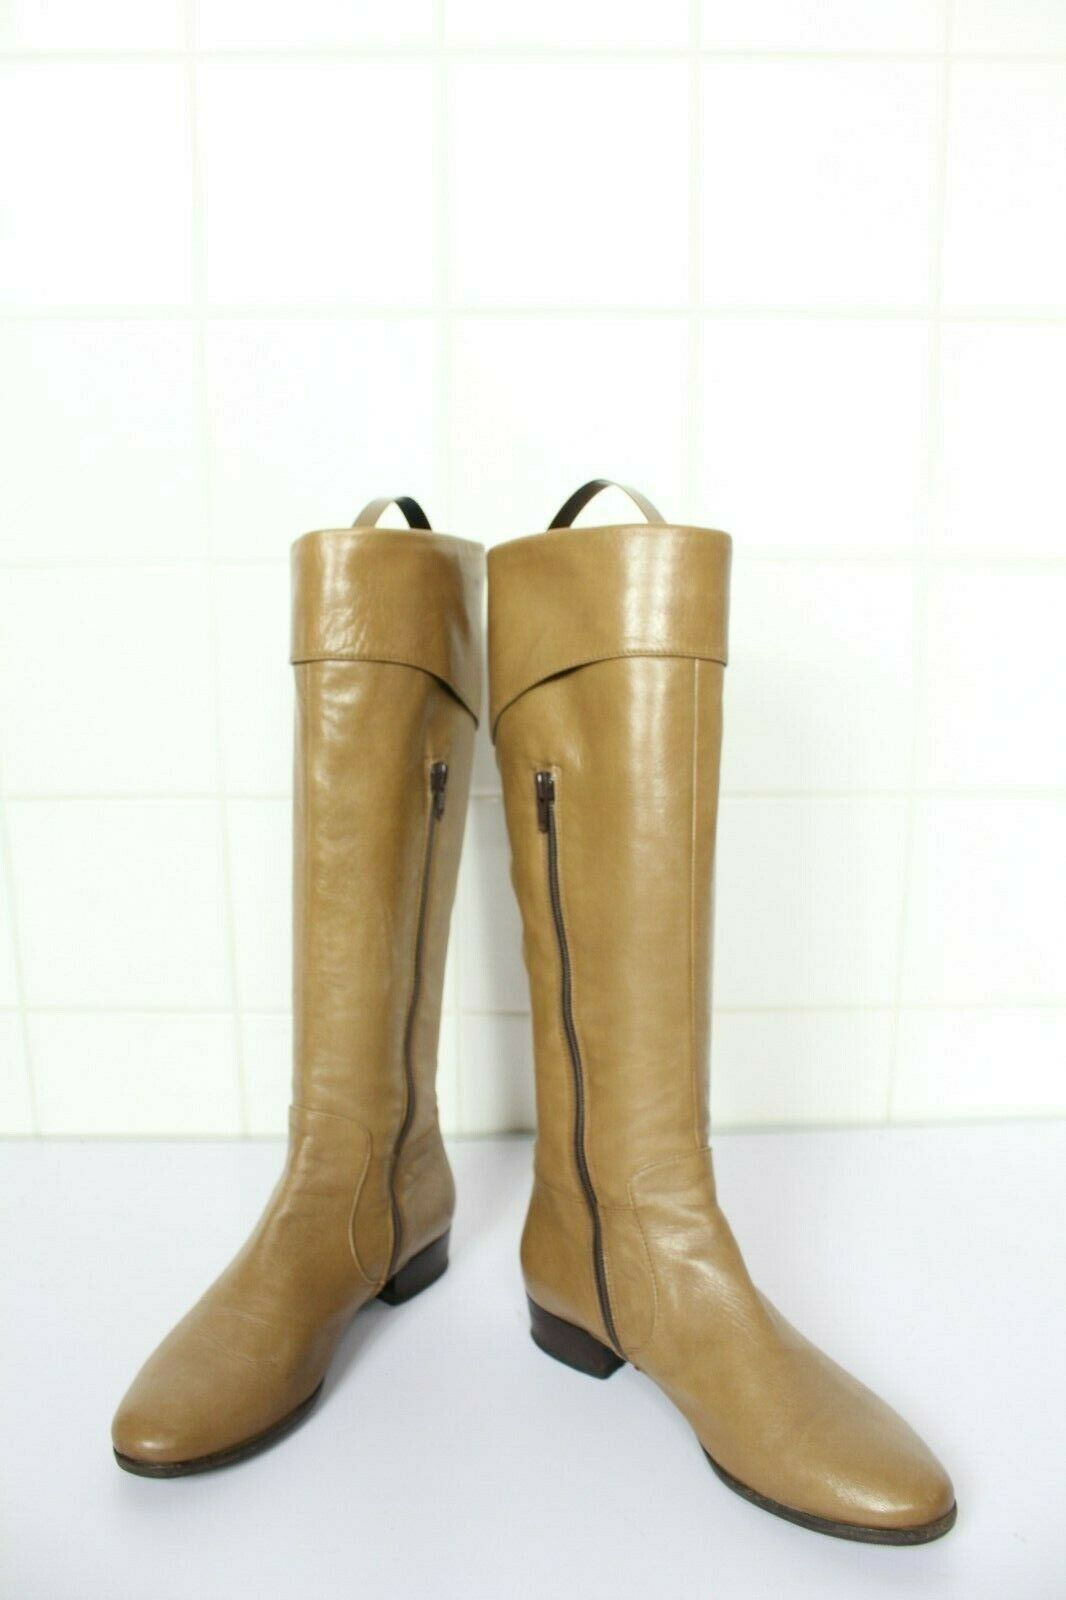 Pomme d or lujo elegante High botas botas plenamente cuero genuino marrón eu 37, 5-